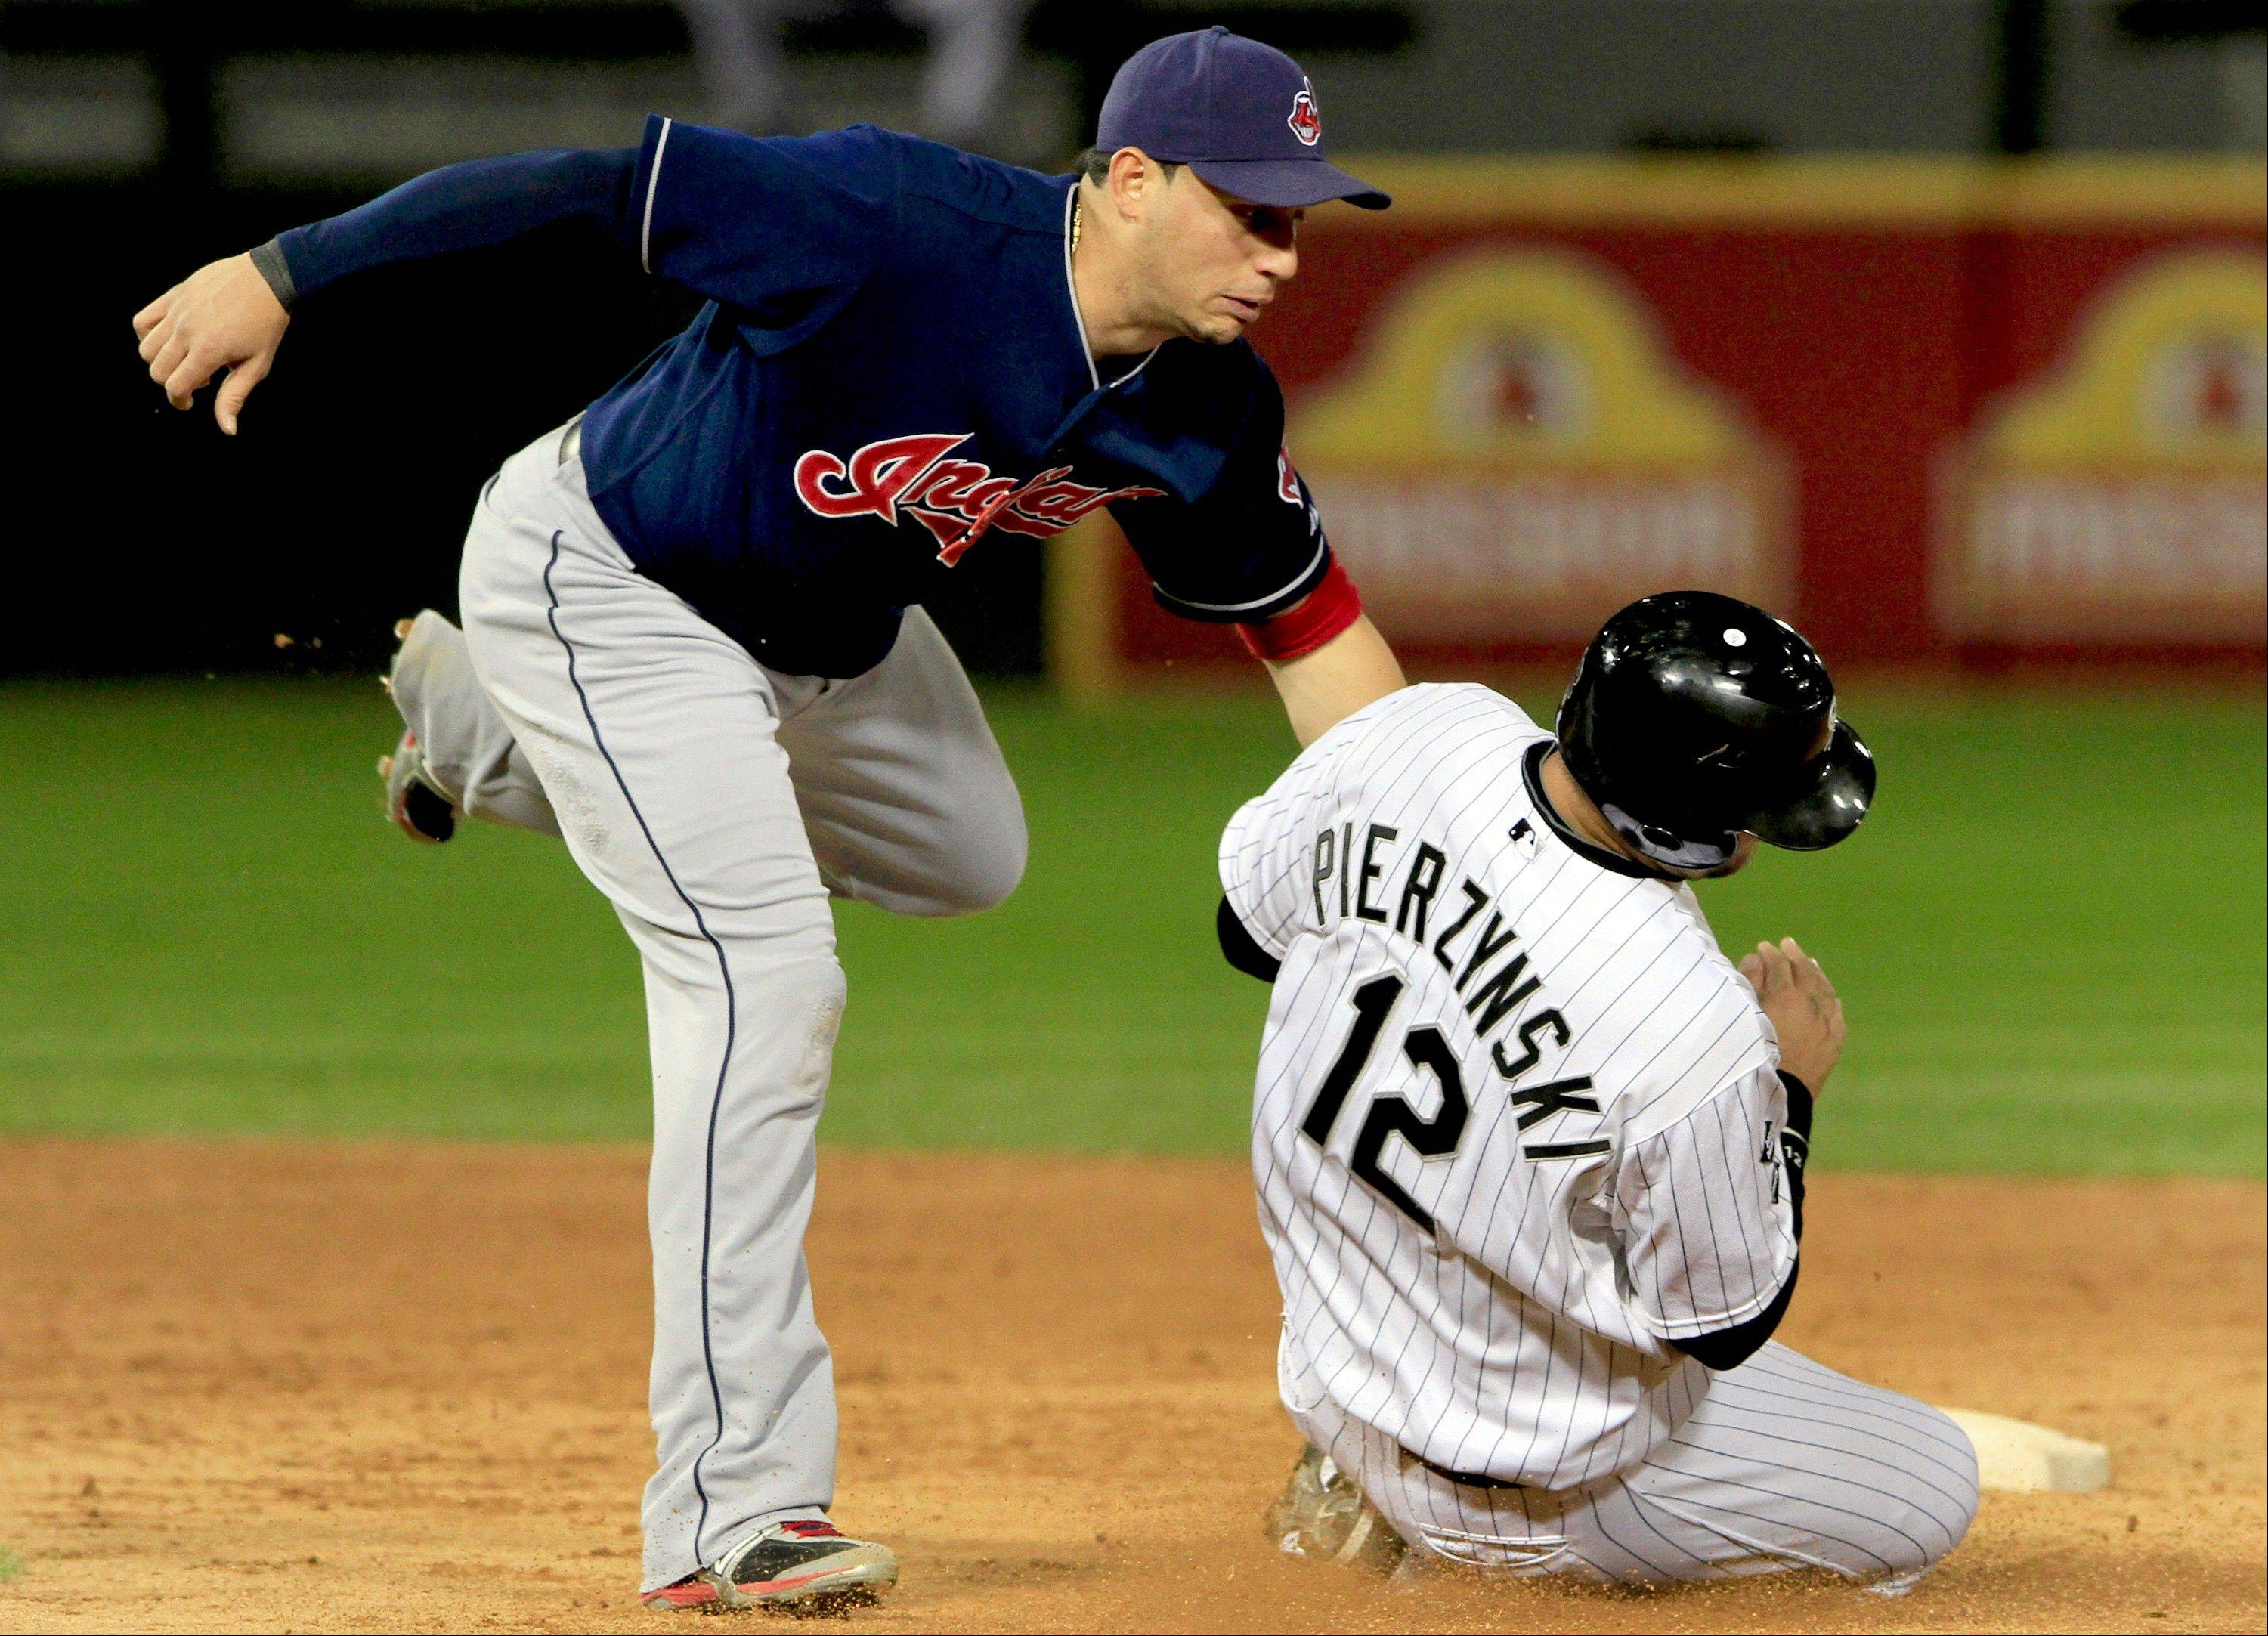 The White Sox's A.J. Pierzynski is out at second on a fielder's choice as Cleveland Indian's Asdrubal Cabrera, left, makes the tag in the fifth inning of a baseball game Monday.